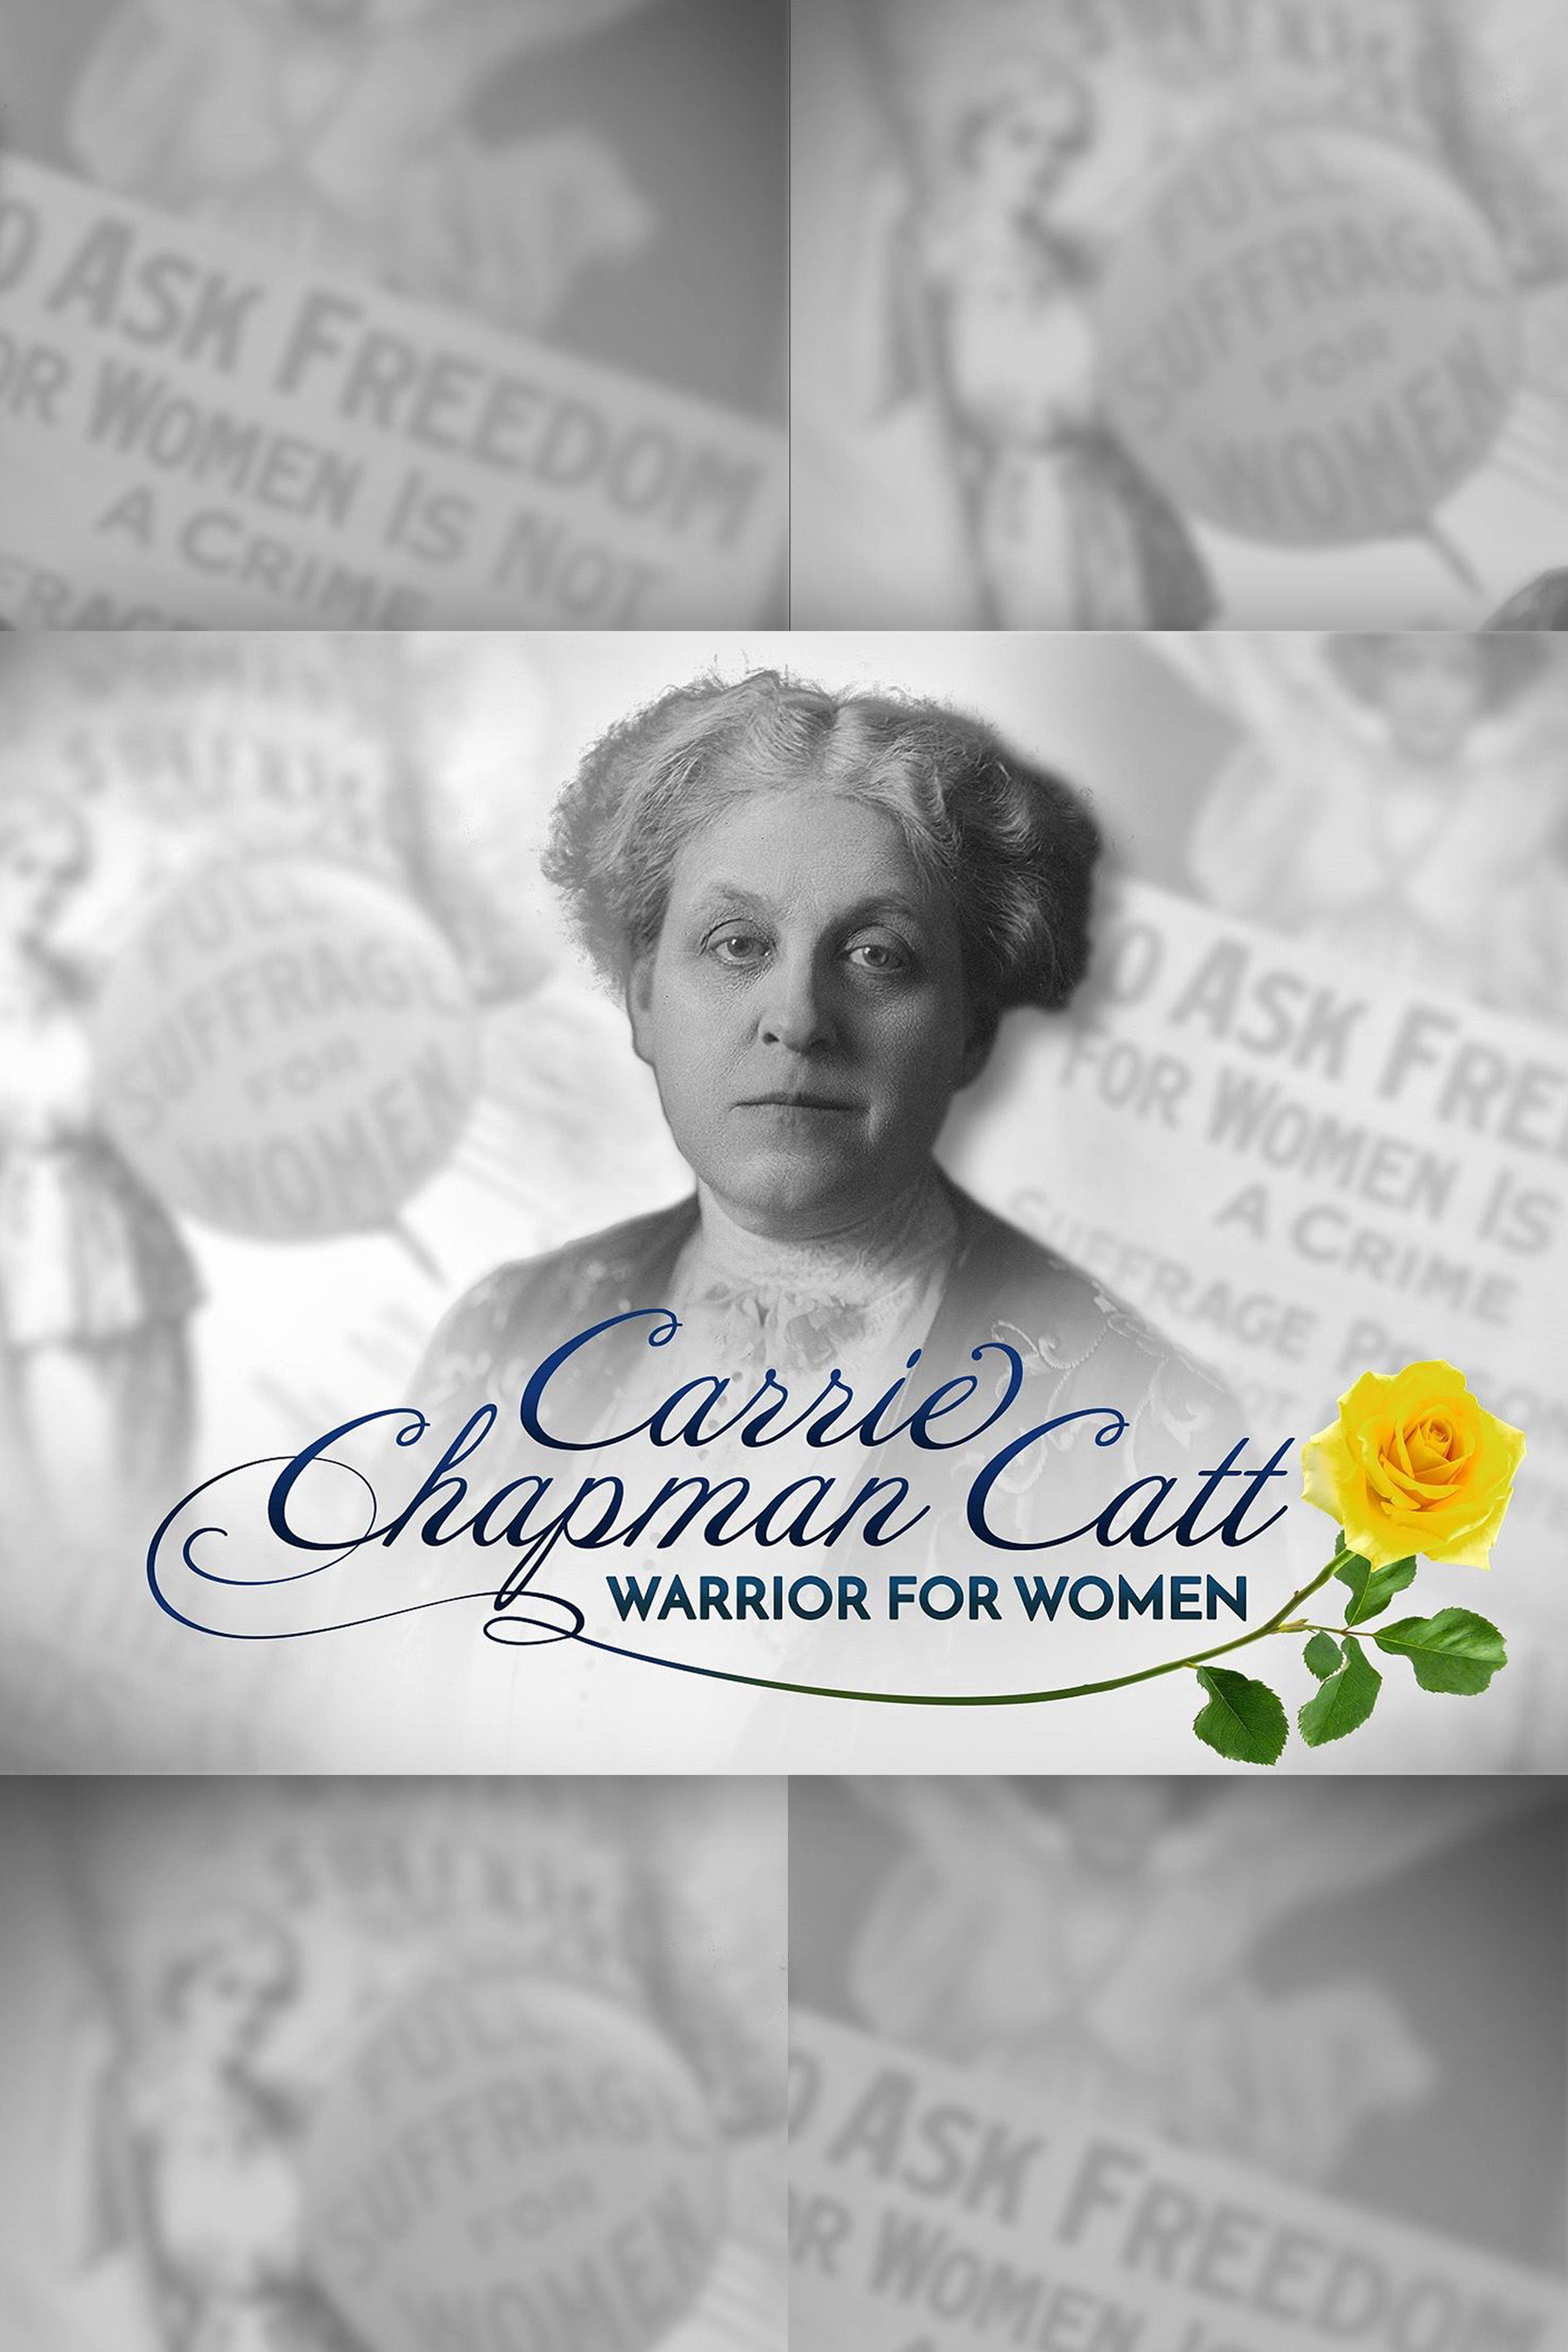 Carrie Chapman Catt: Warrior for Women